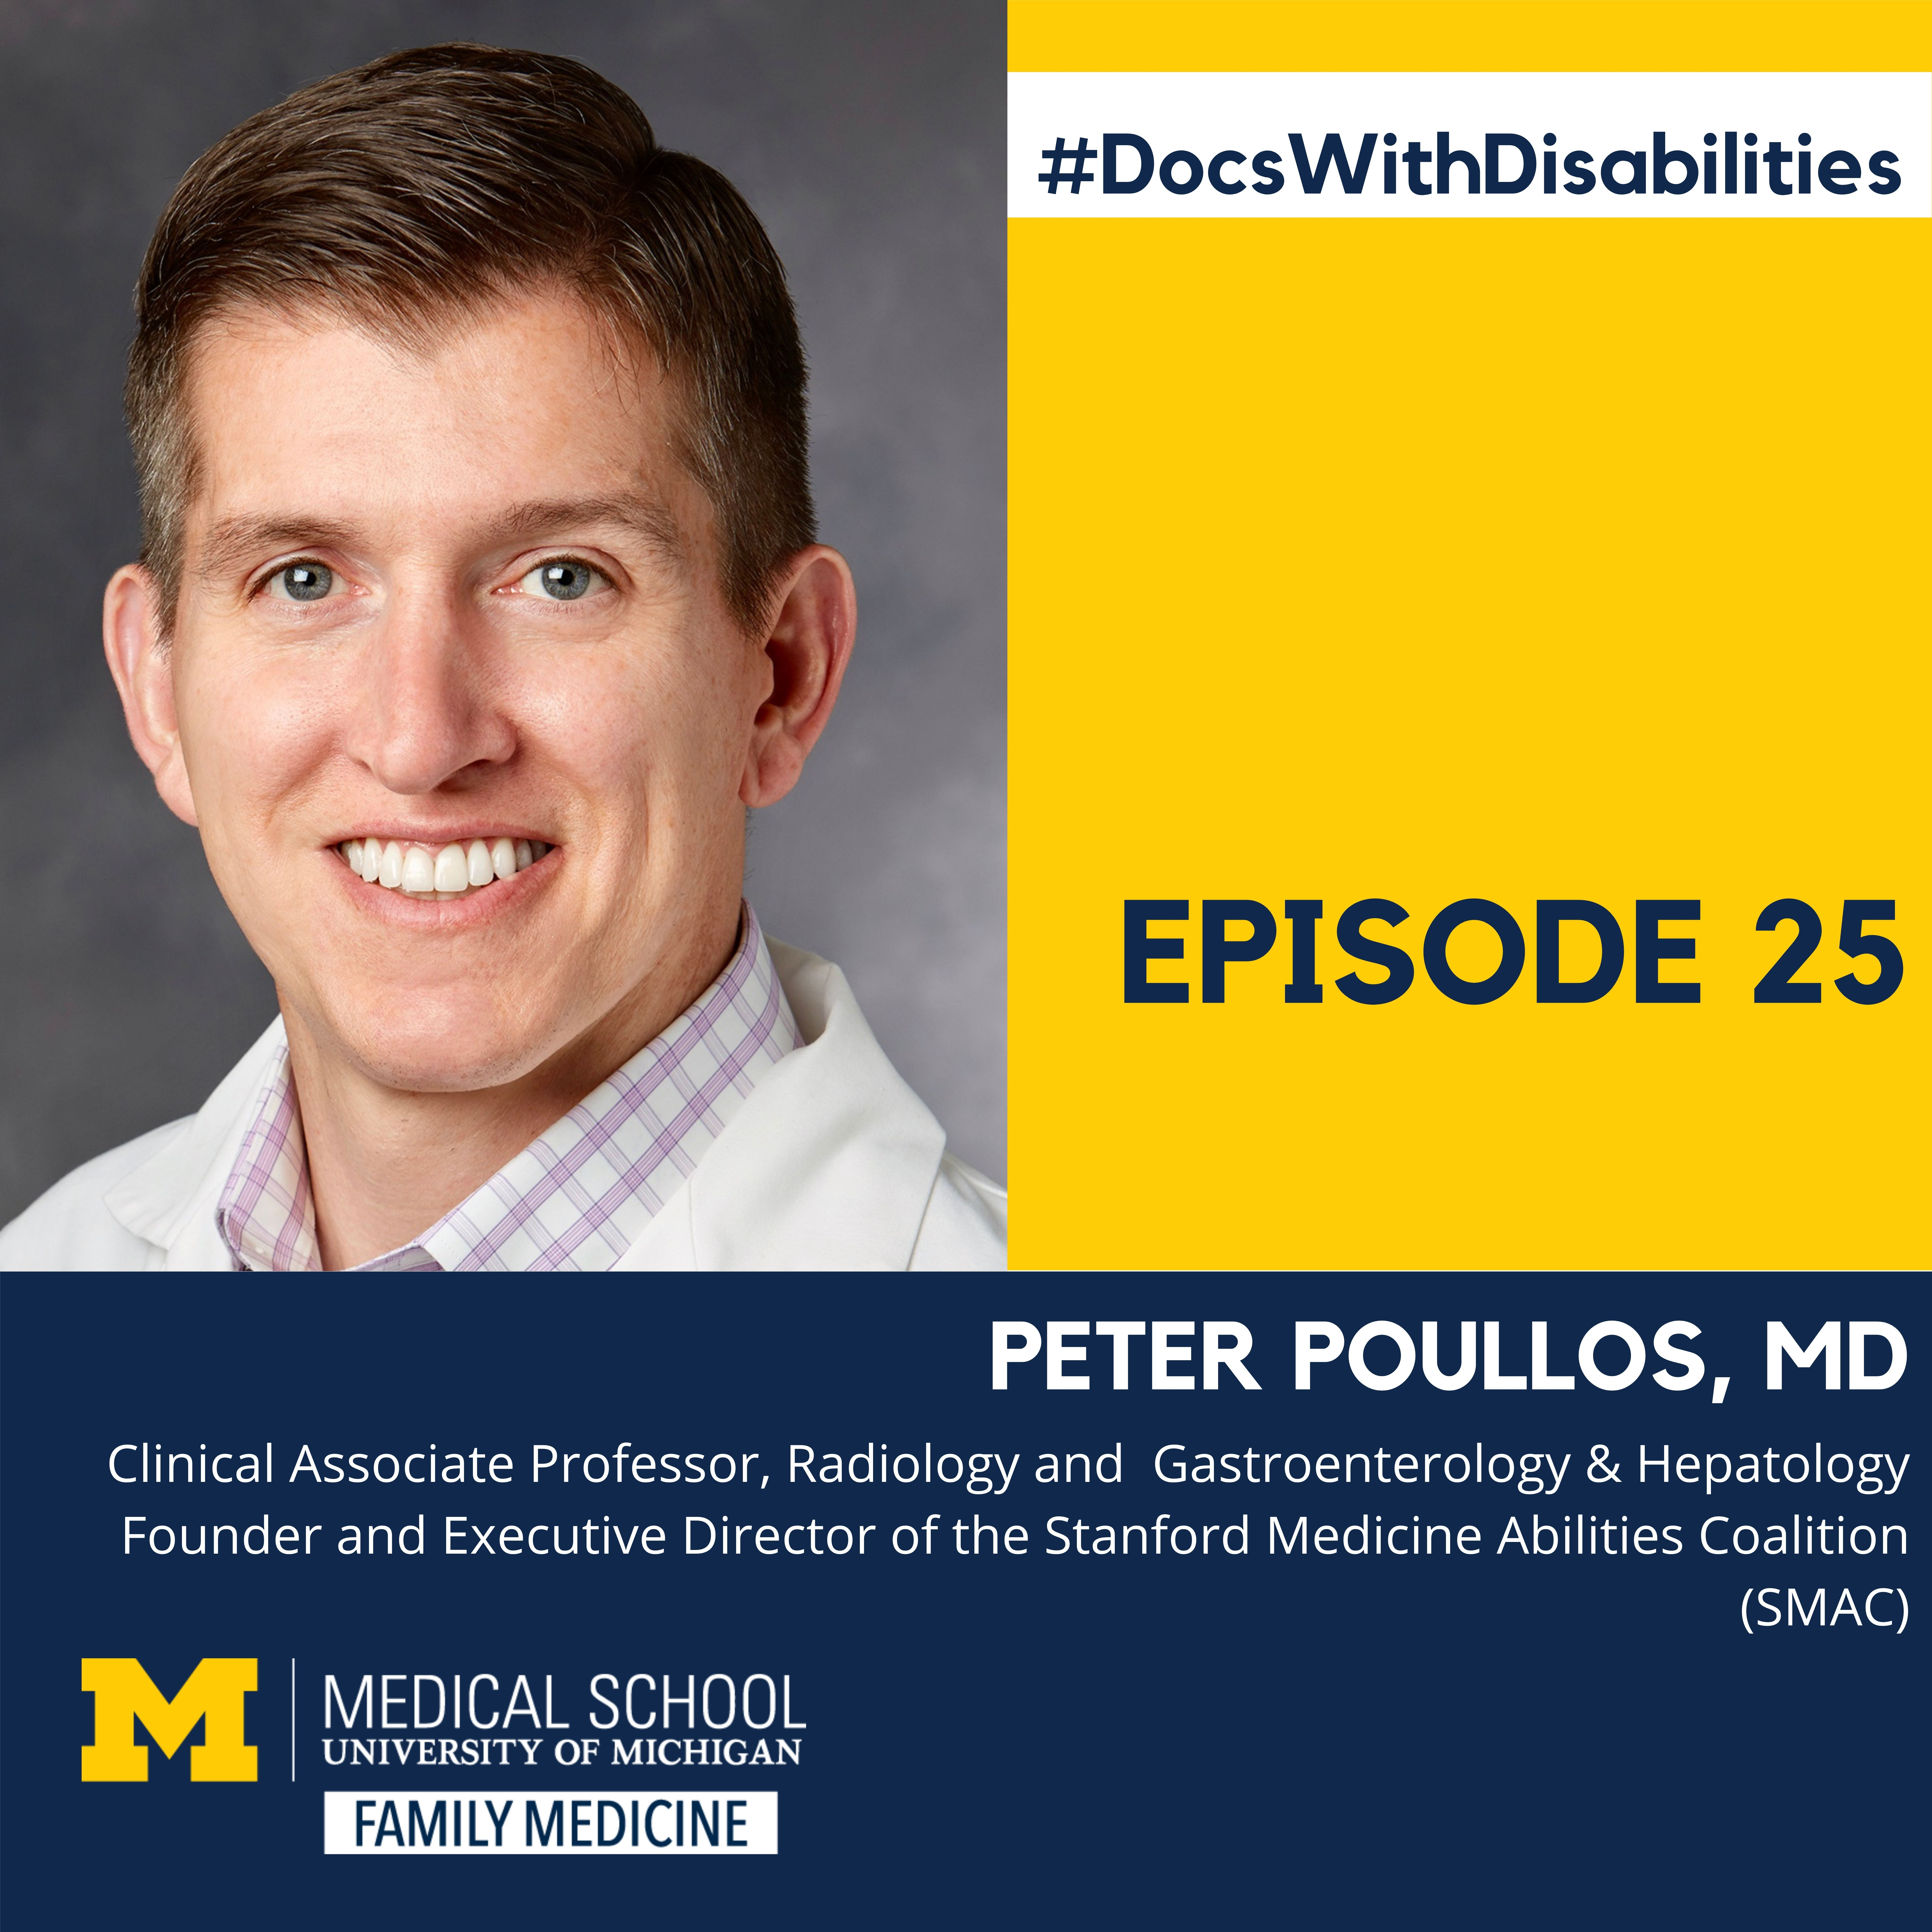 thumbnail of Peter Poullos